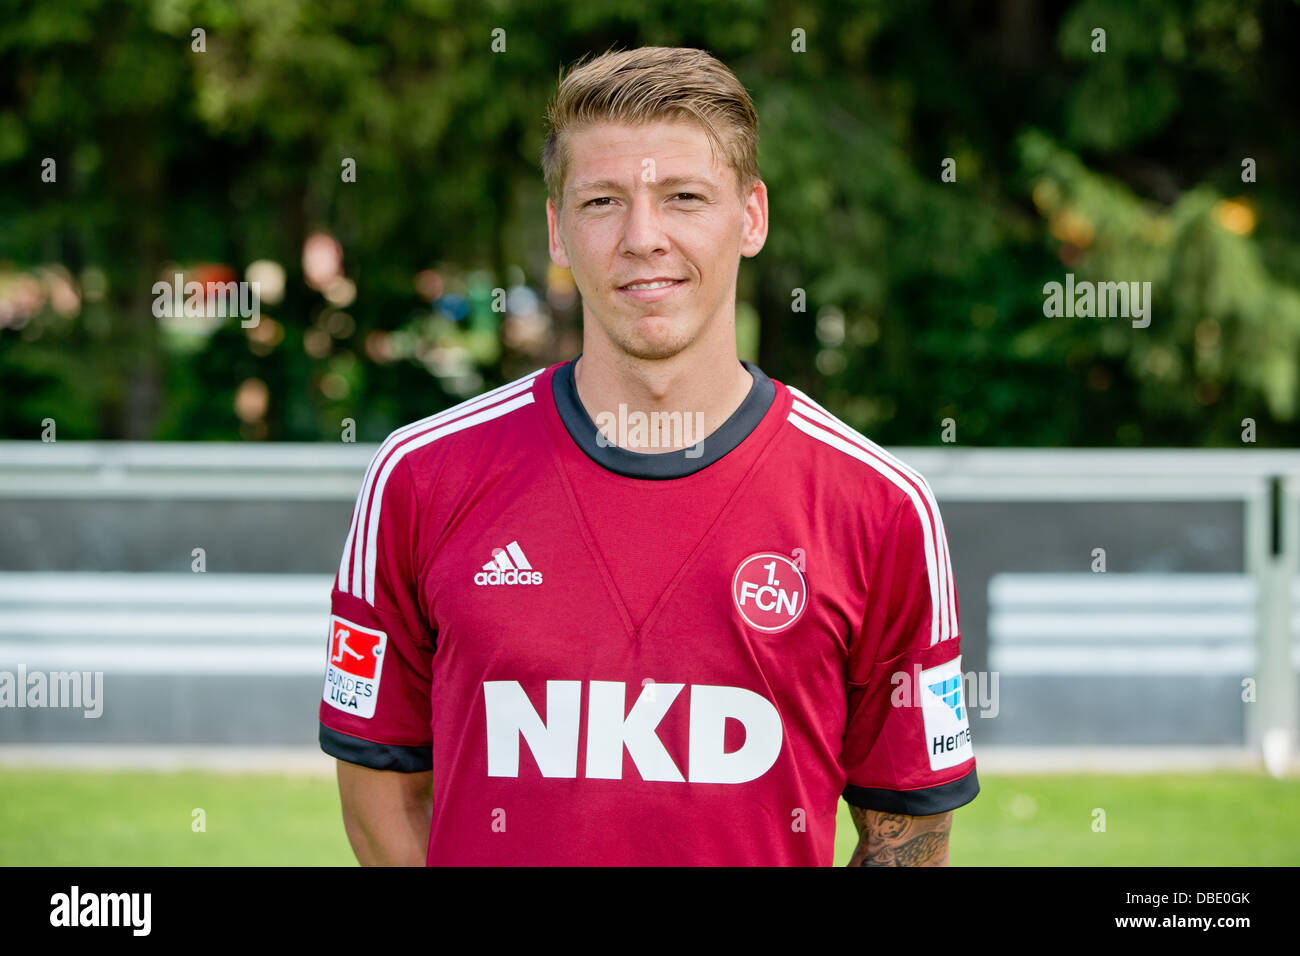 Player Mike Frantz of German Bundesliga club 1. FC Nurnberg during the official photocall for the season 2013-14 - Stock Image